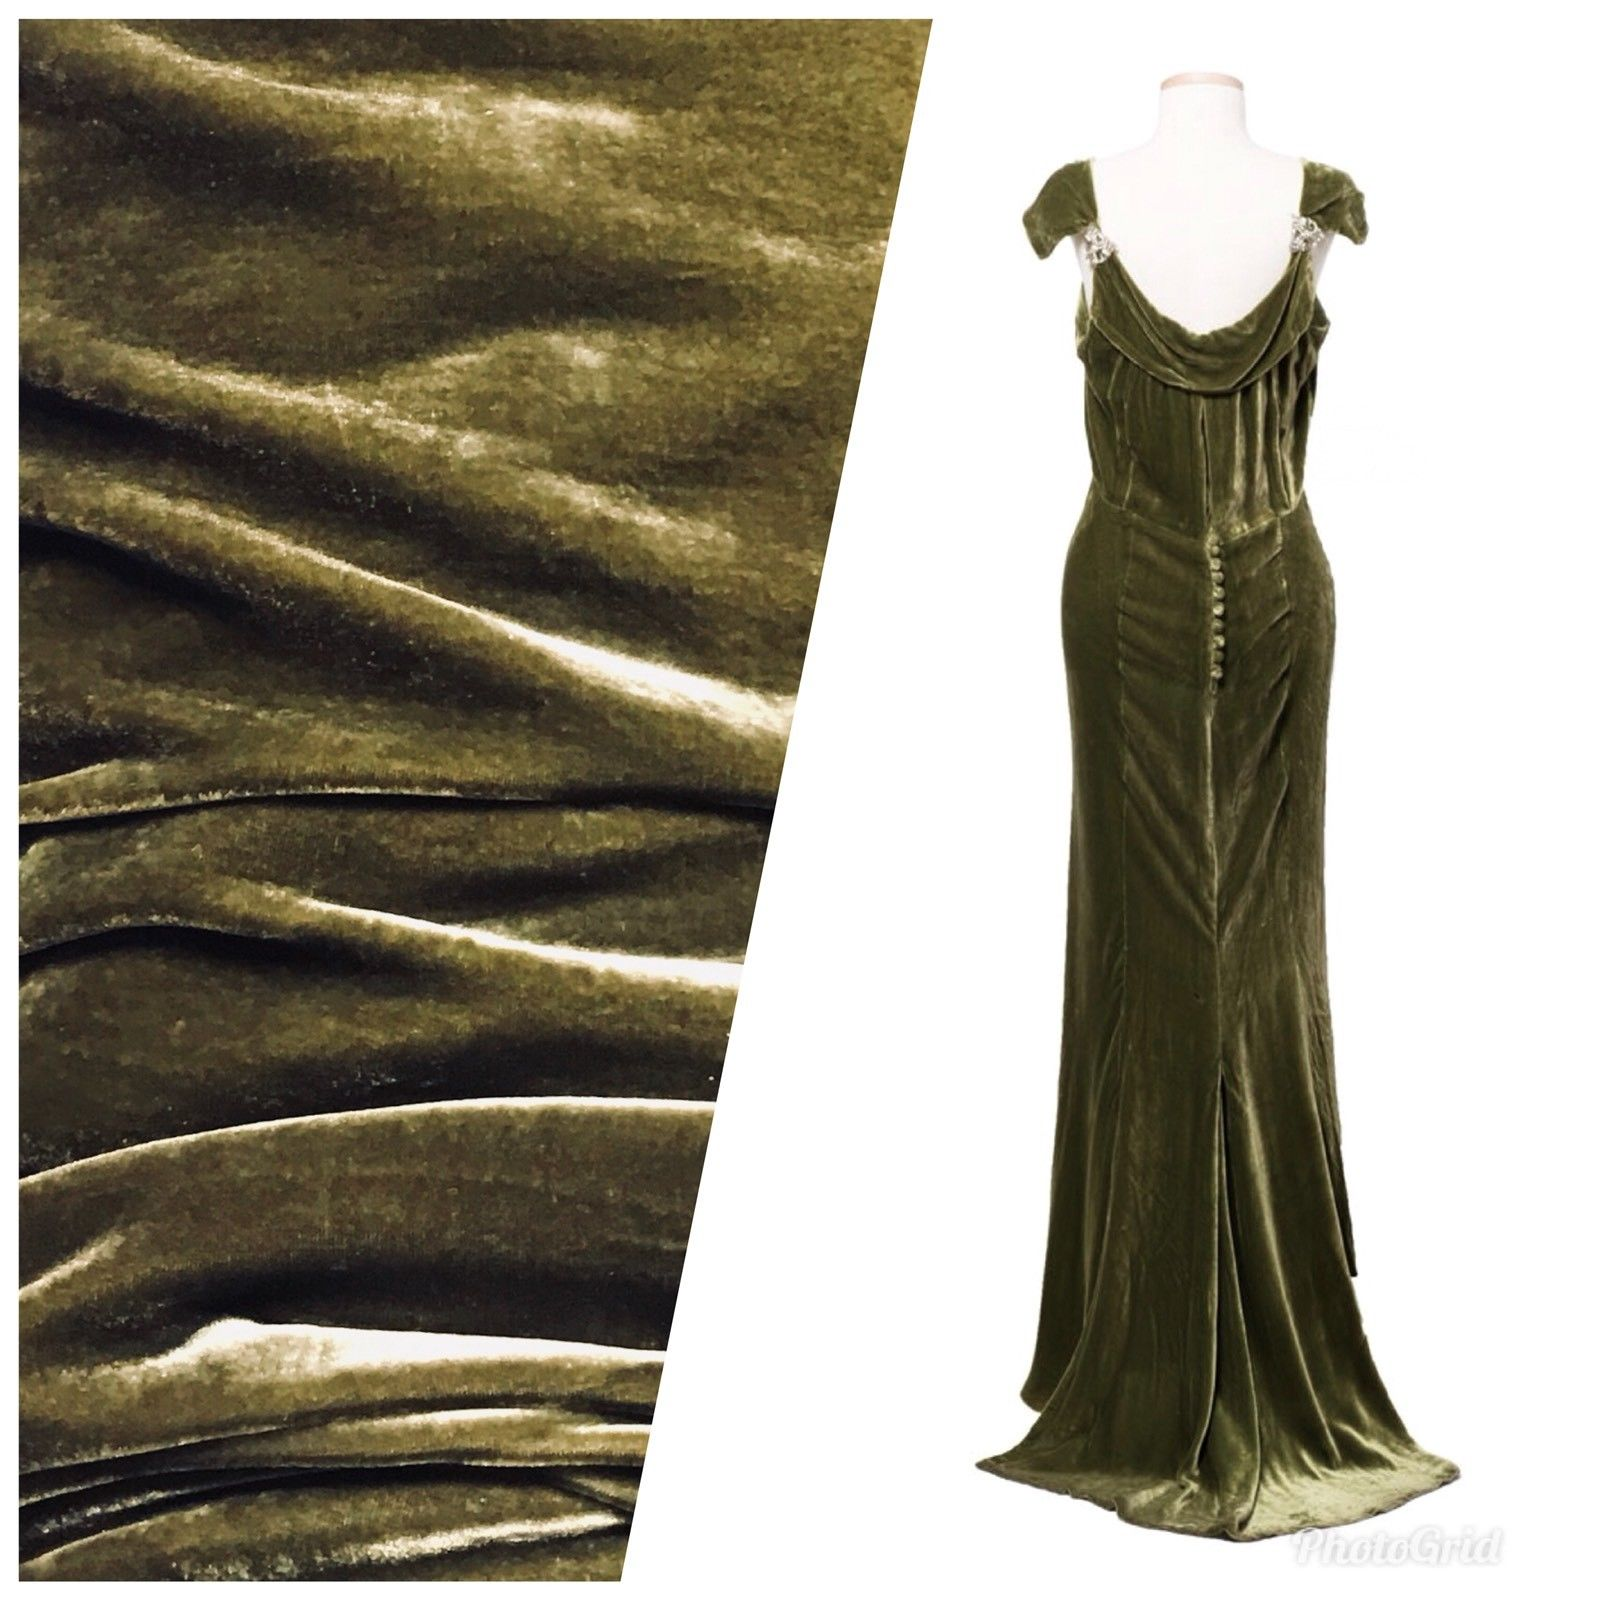 Close-Out Designer Runway Silk Rayon Velvet - Antique Olive Green - Fancy Styles Fabric Pierre Frey Lee Jofa